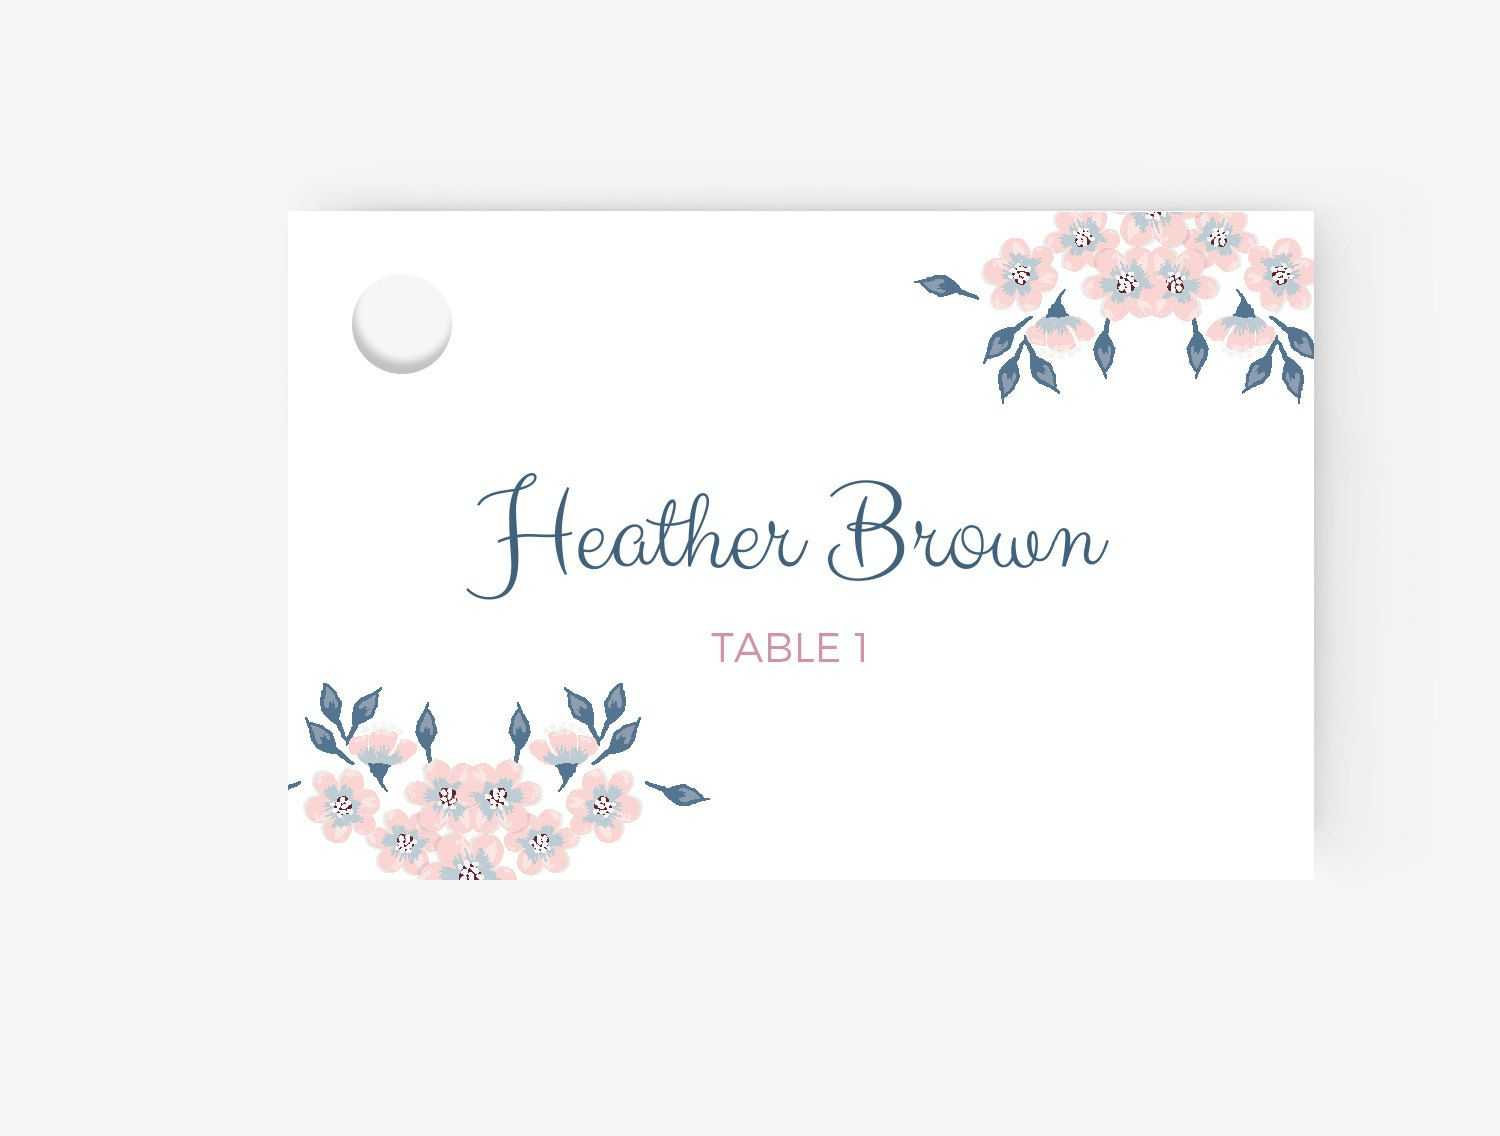 011 Place Cards Template Word Ideas Marvelous Name Table Pertaining To Table Place Card Template Free Download